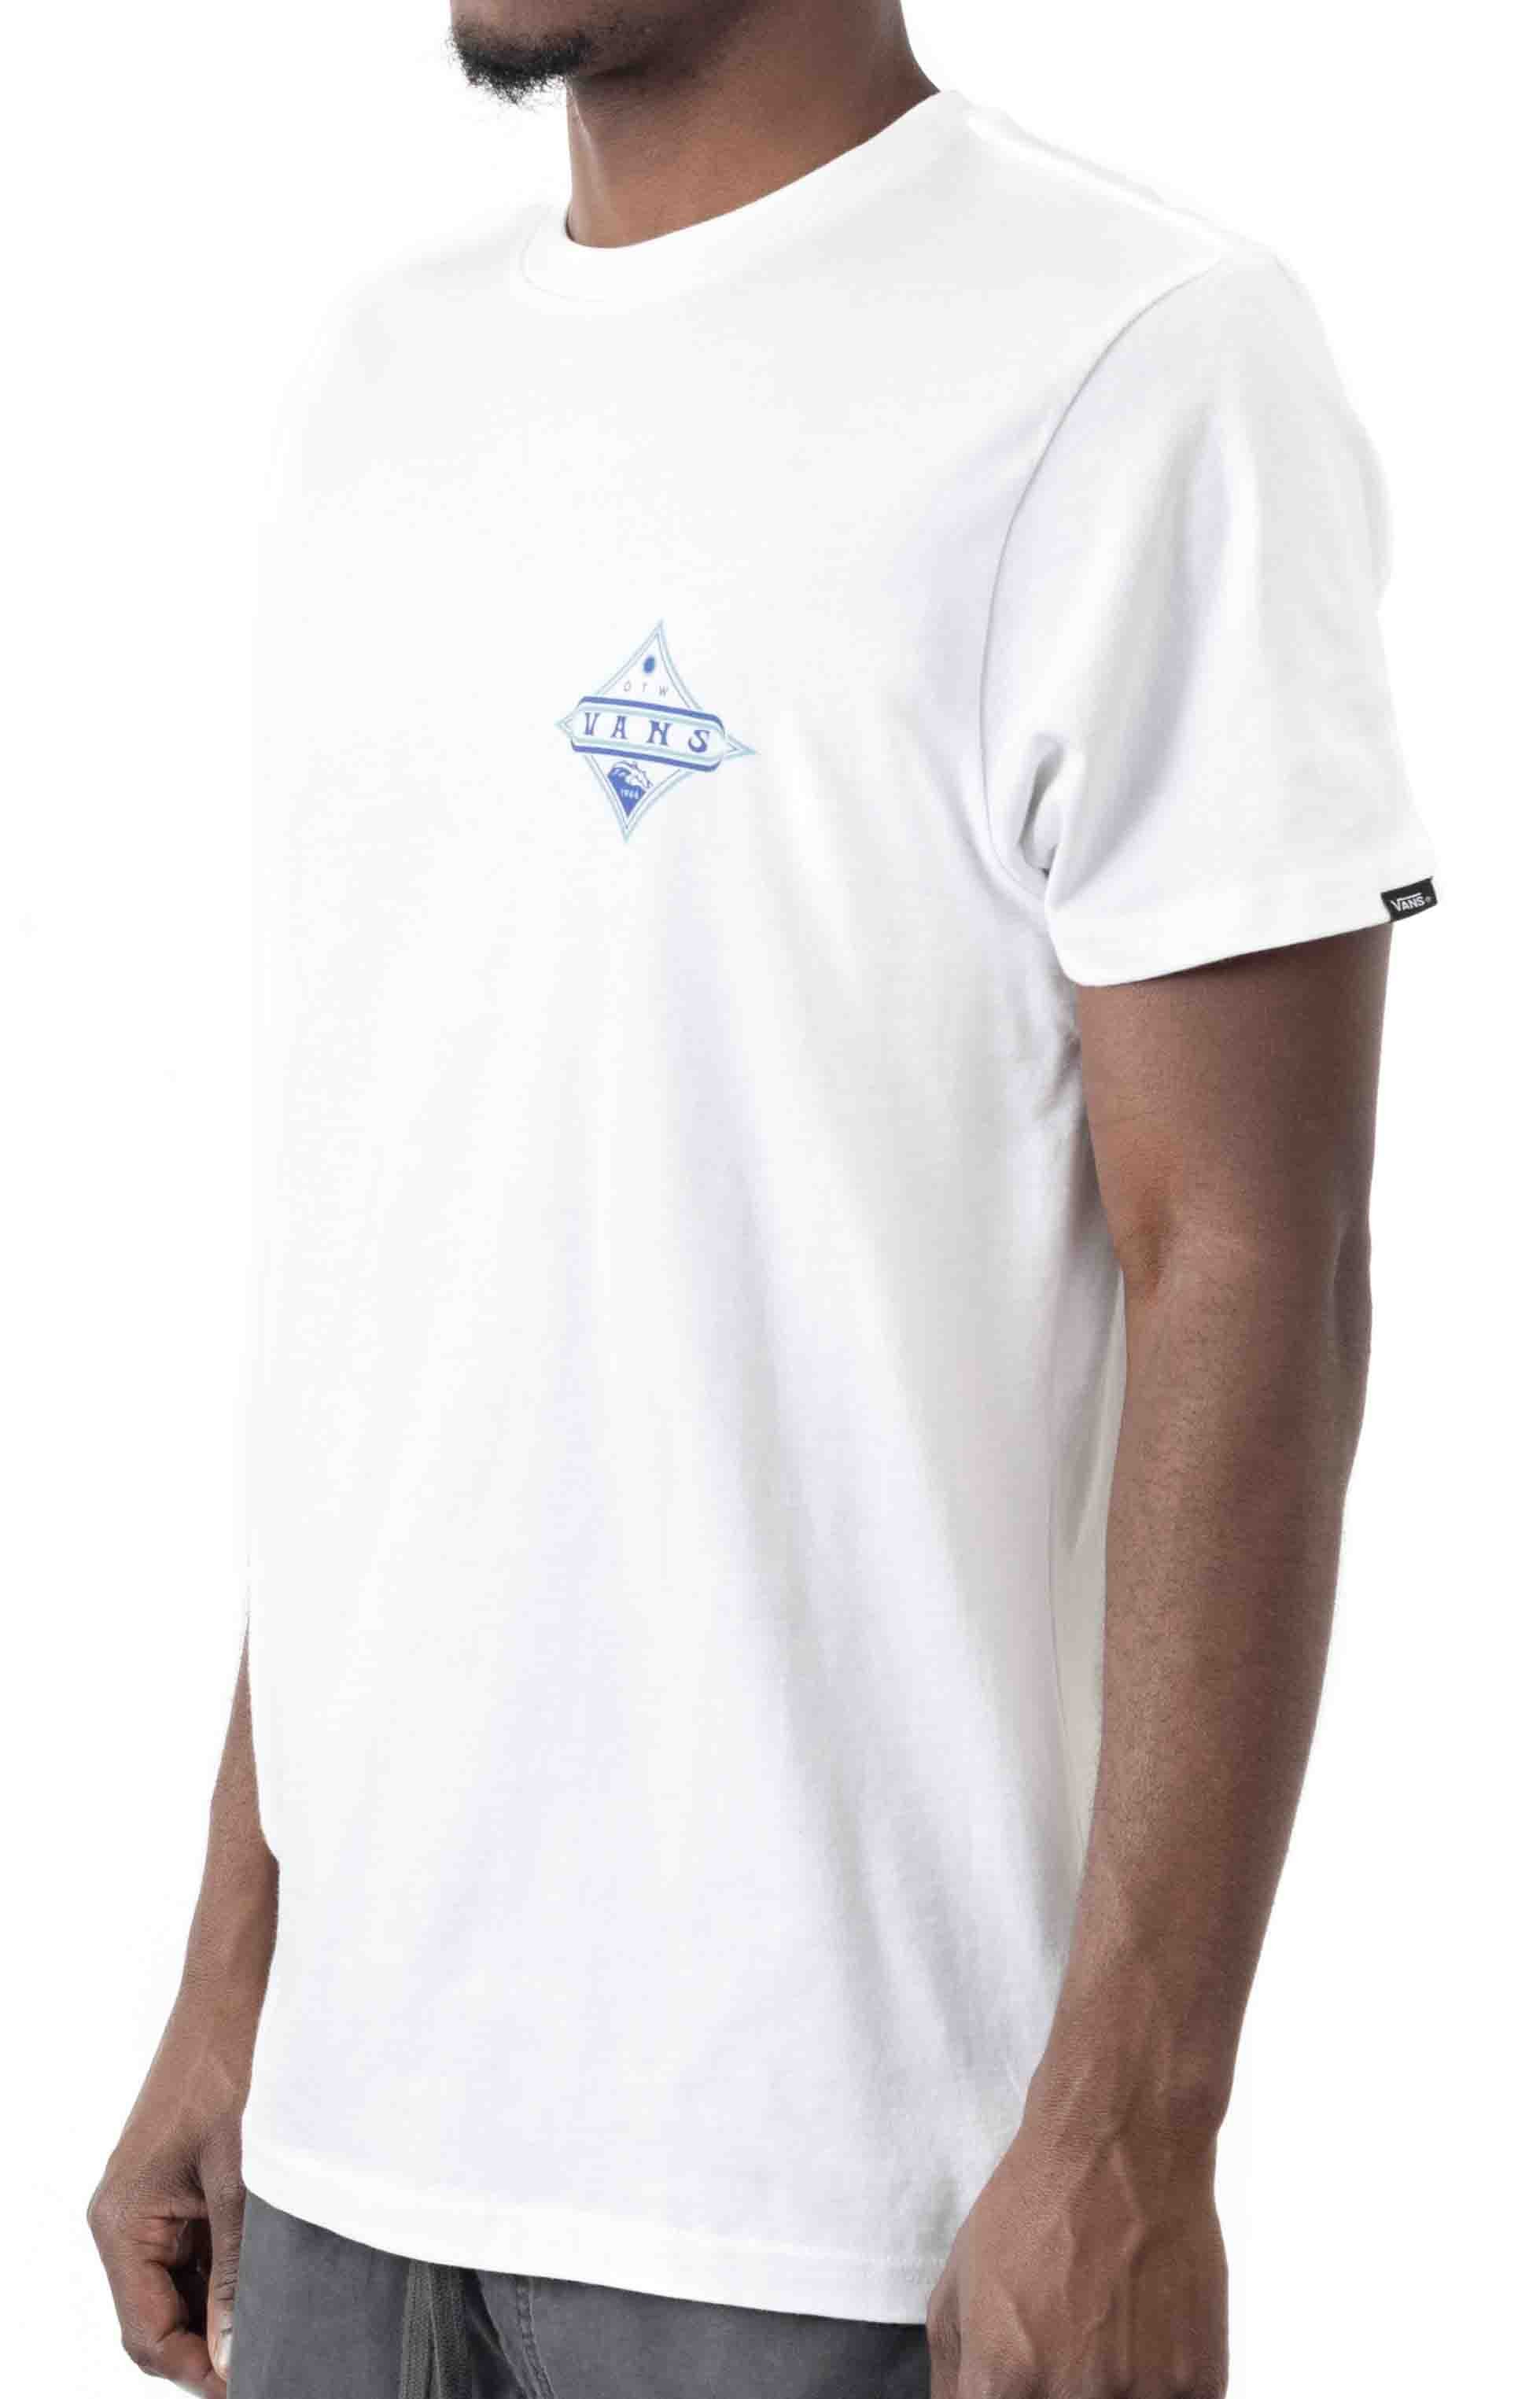 Vintage Pointed Shaper T-Shirt - White  3